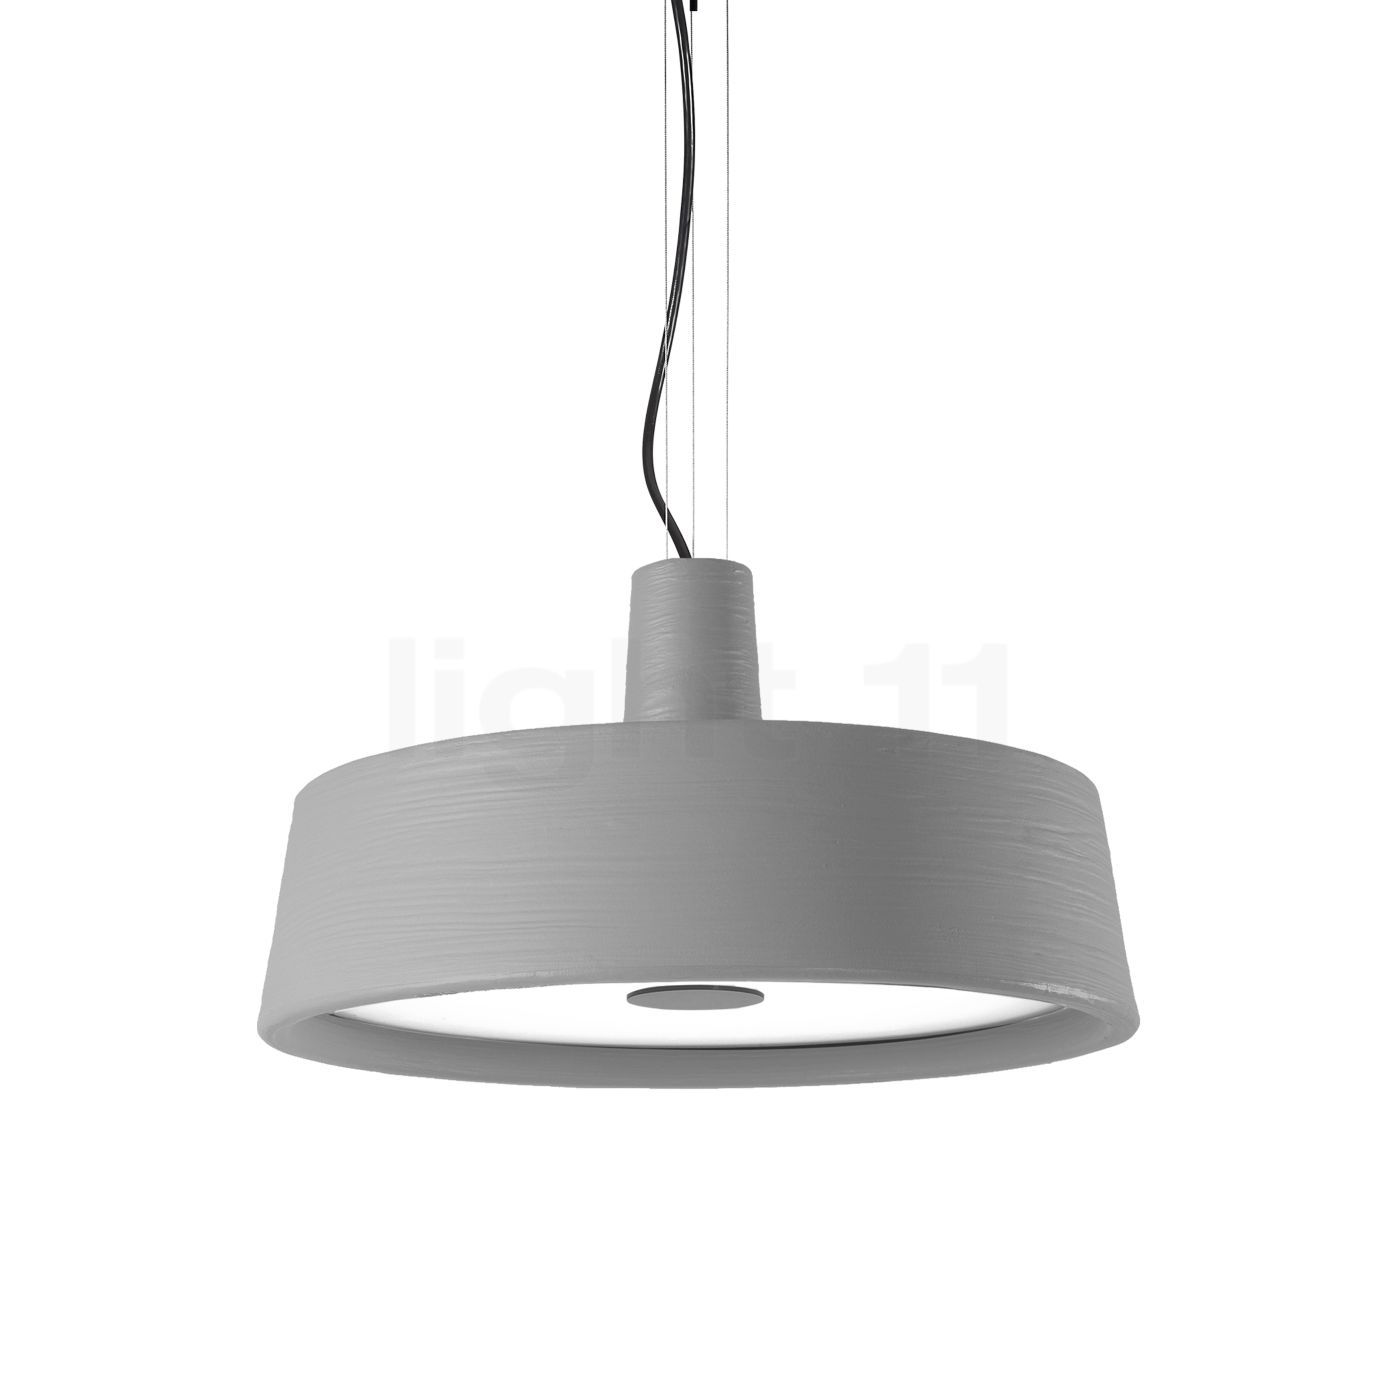 Marset soho 57 pendant light led workplace lamps mozeypictures Gallery